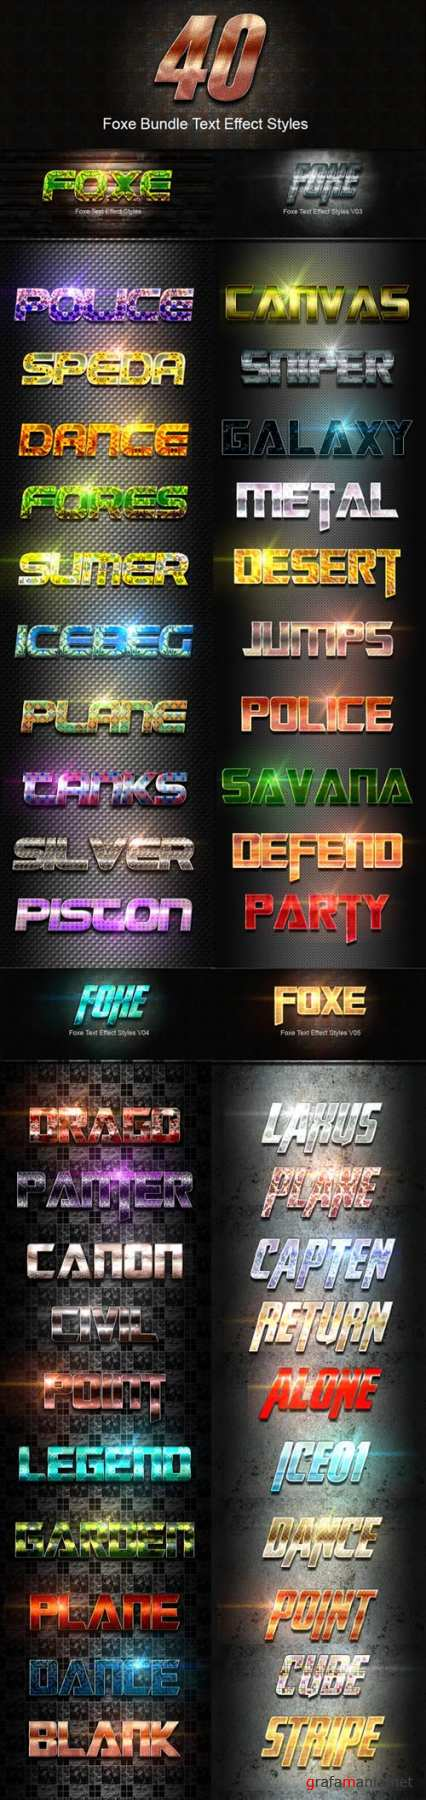 40 Foxe Bundle Text Effect Styles 19994984